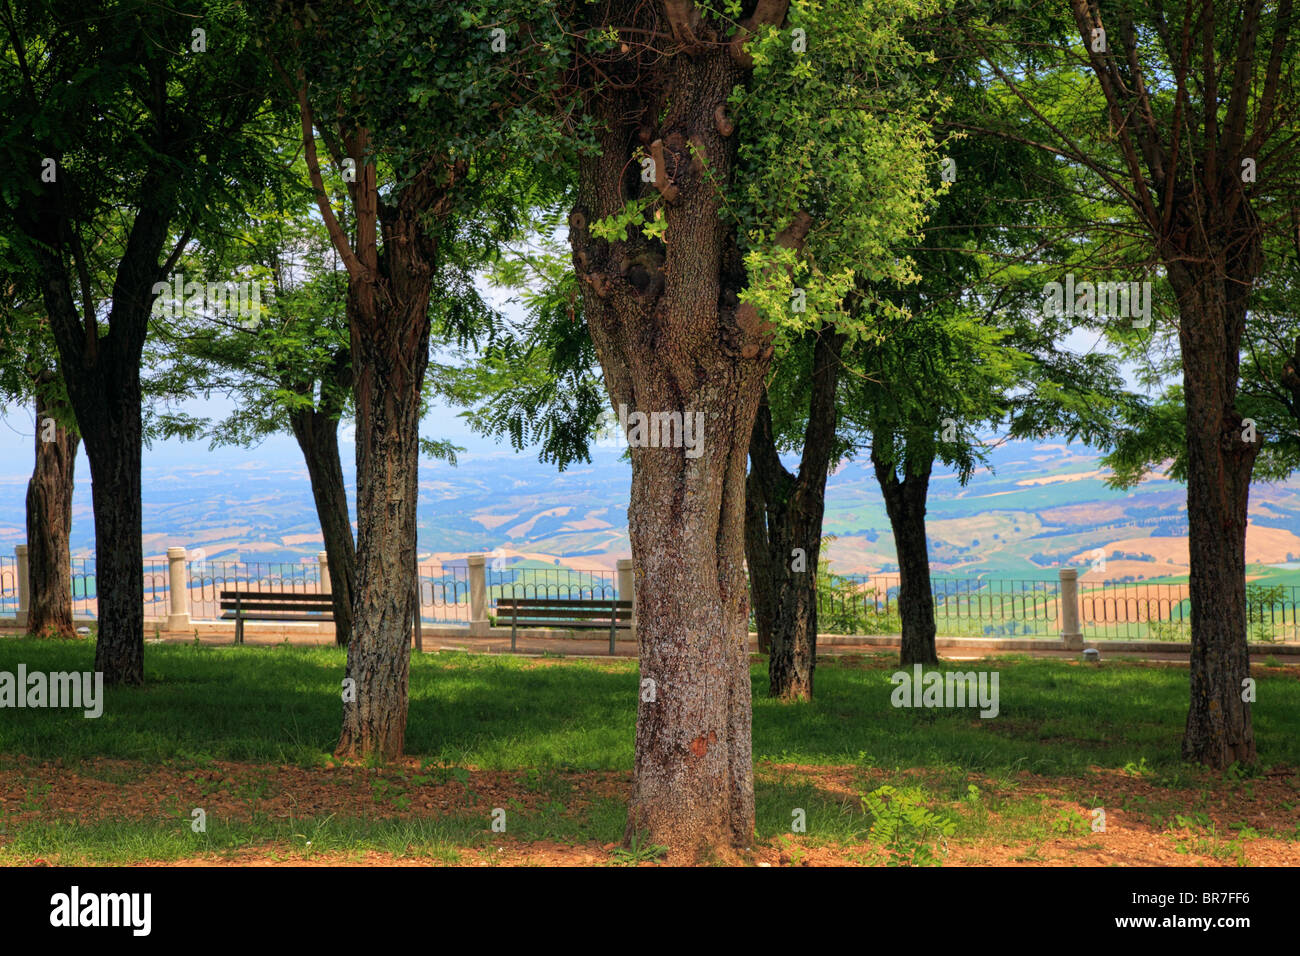 City park in Tuscan hill town Montalcino - Stock Image